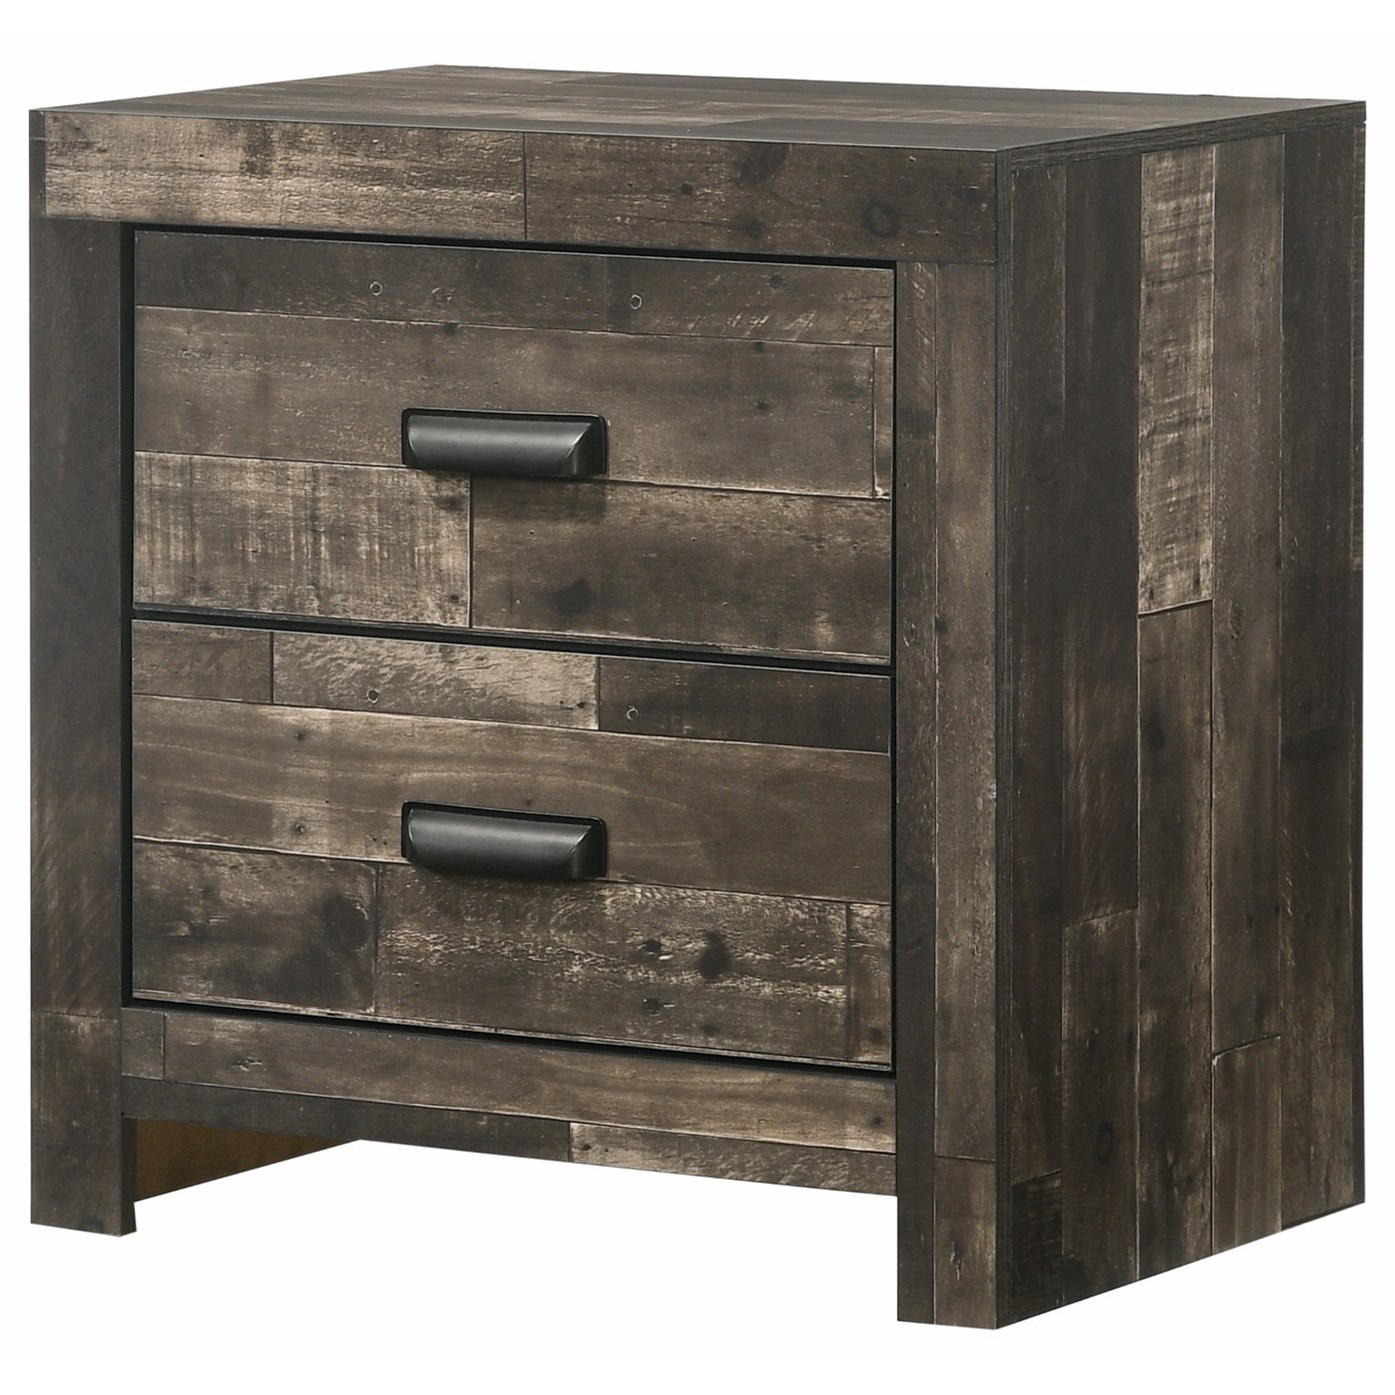 Tallulah Nightstand by Crown Mark at Northeast Factory Direct